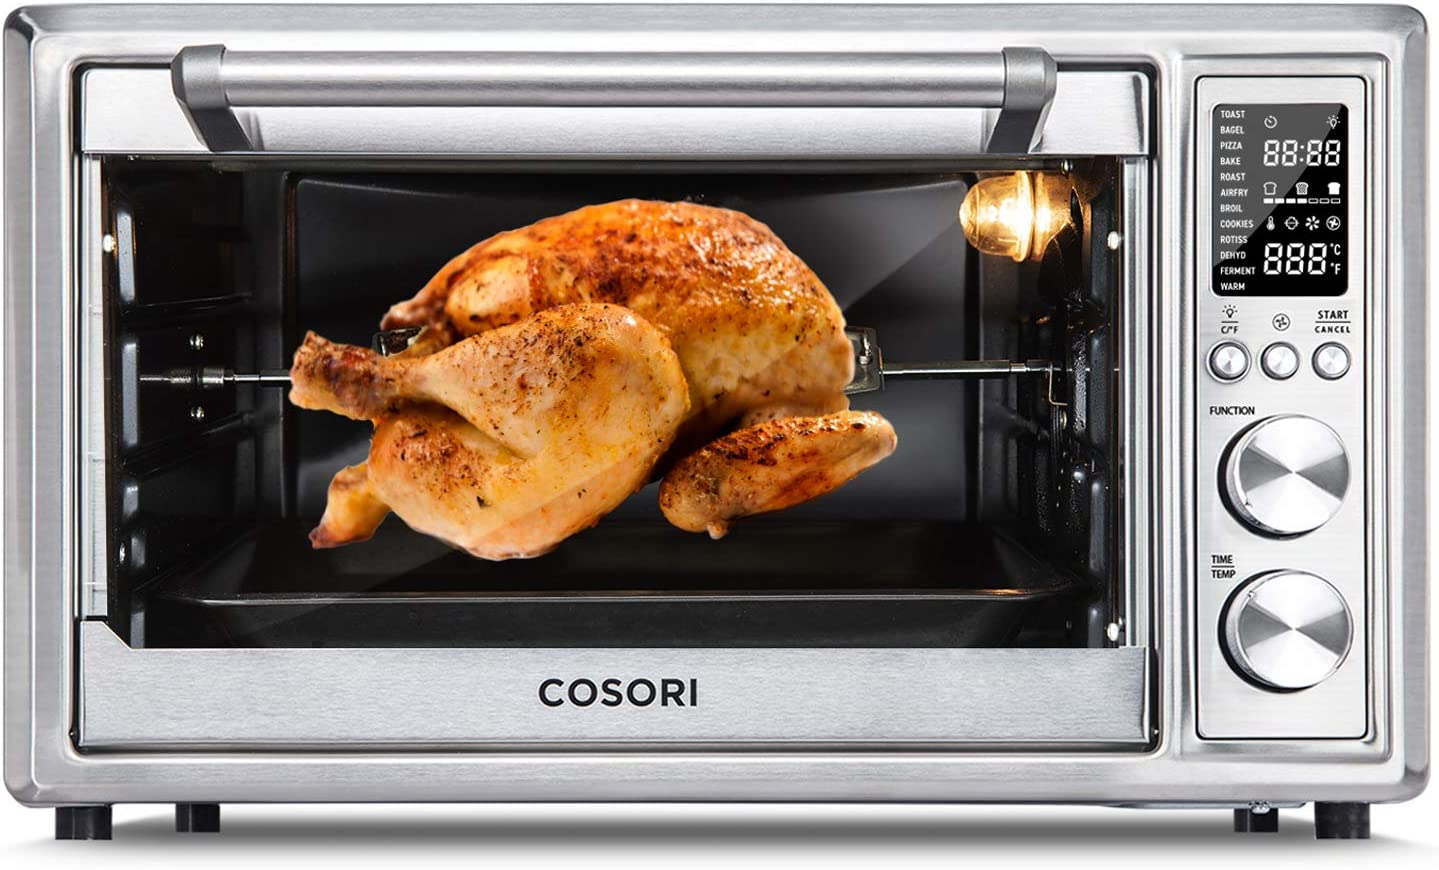 COSORI CO130-AO Air Fryer Toaster Combo 30L 12 Functions Large Countertop Oven, Rotisserie & Dehydrator with 1800W, 100 Recipes & 6 Accessories Included, Manual-Silver